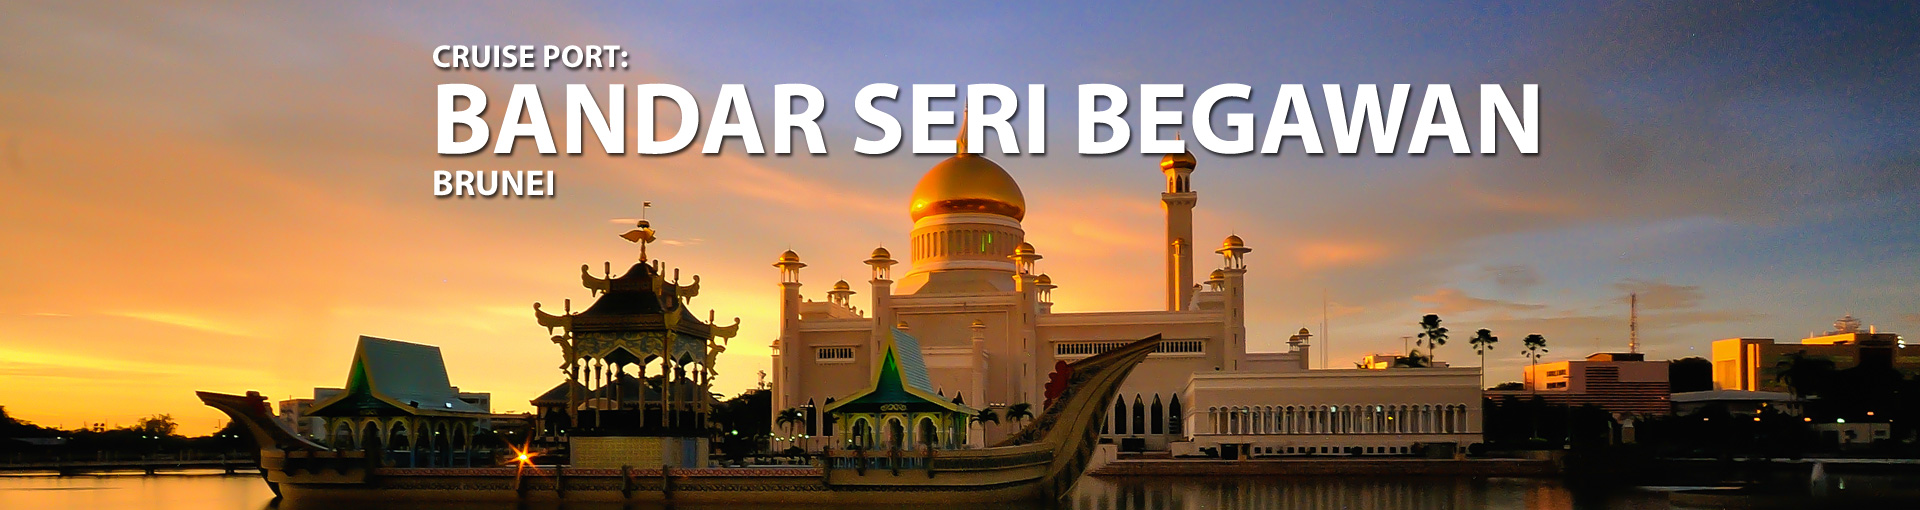 Cruises to Bandar Seri Begawan, Brunei